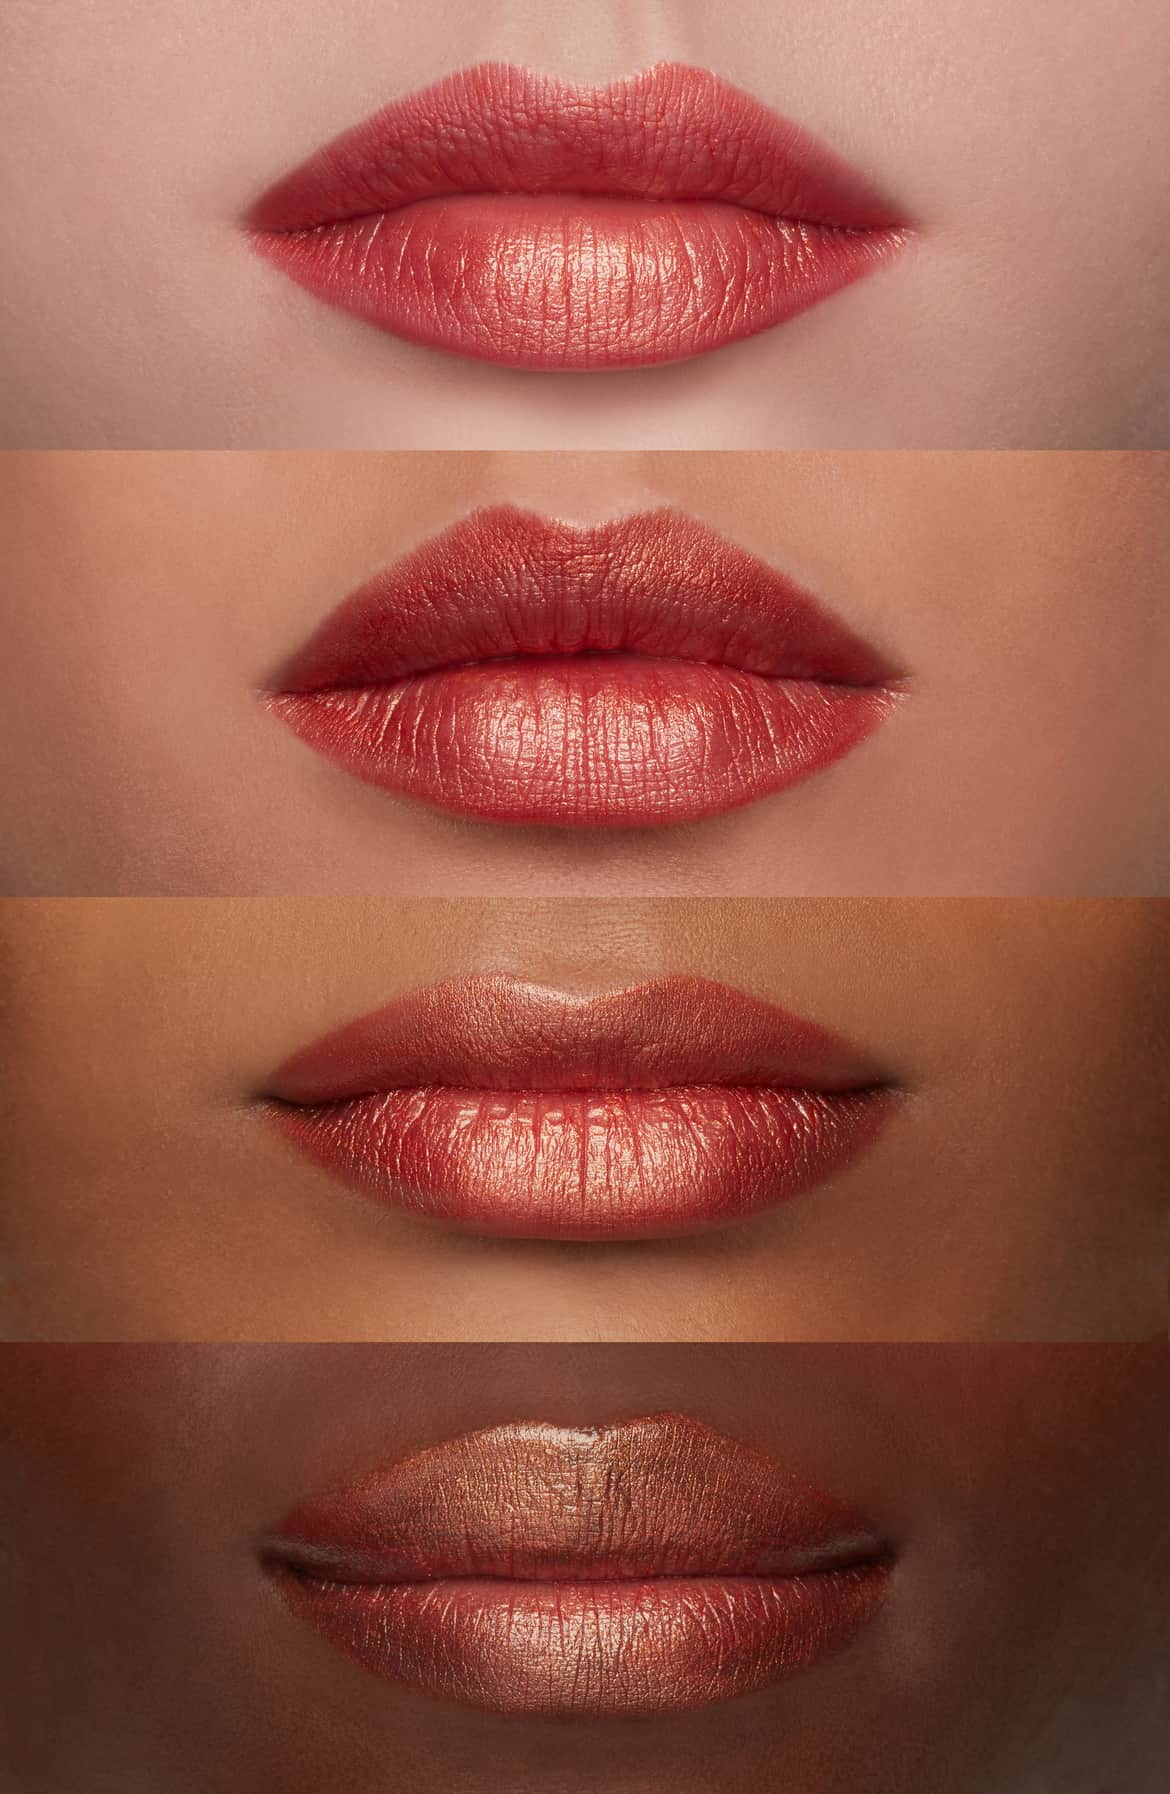 40abff71 ae97 4dc6 99d0 0980e74eeee3 - How to Find a Lipstick to Look Amazing on You